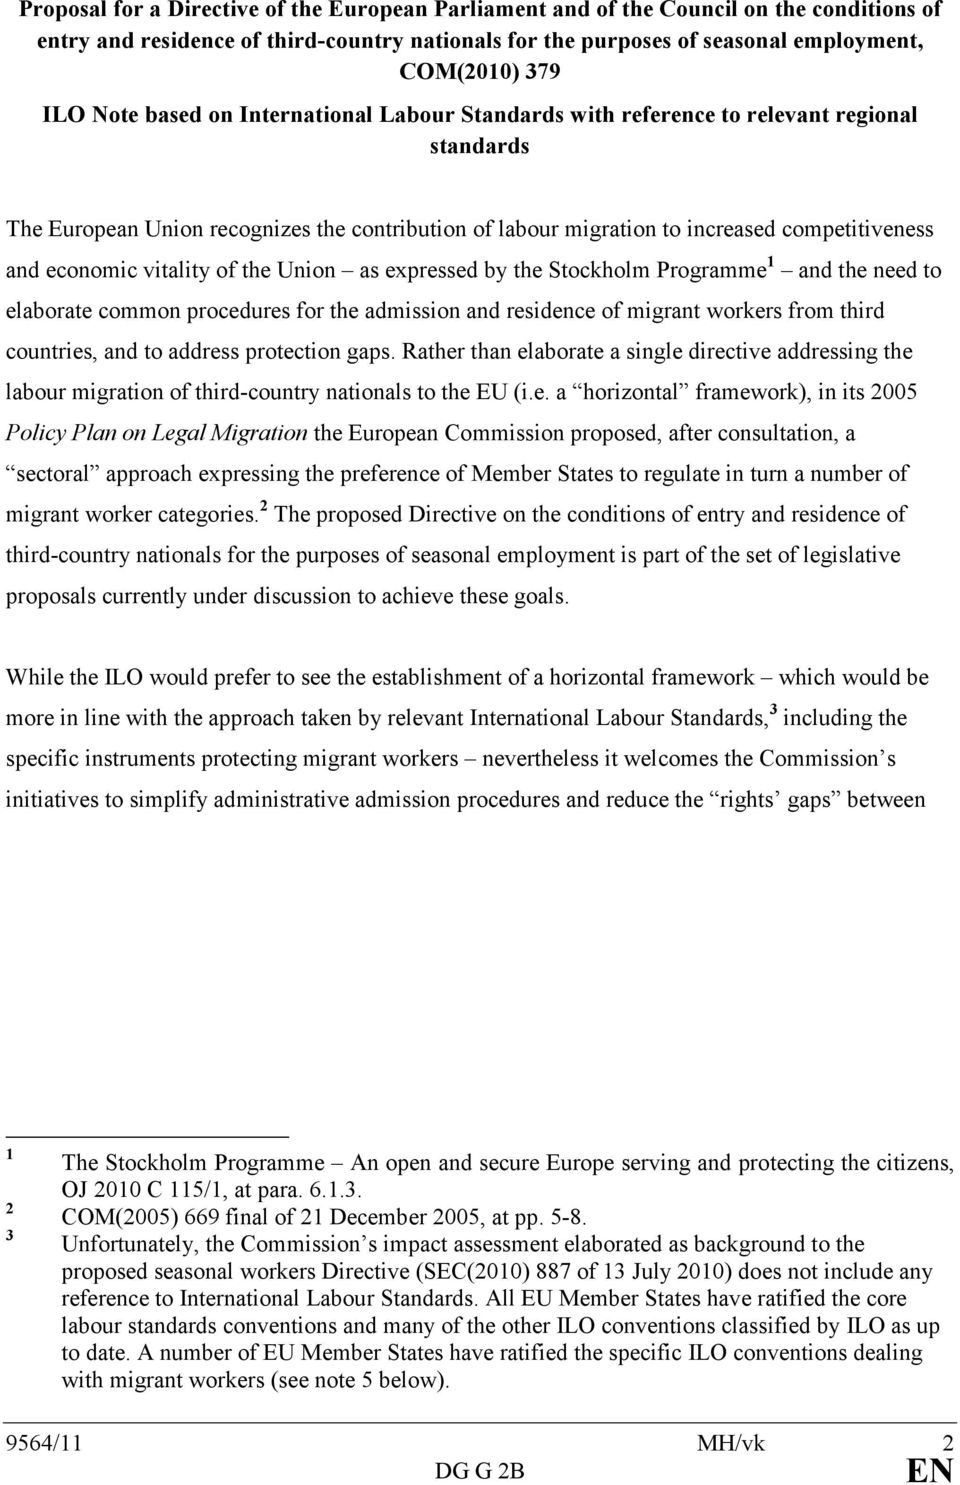 vitality of the Union as expressed by the Stockholm Programme 1 and the need to elaborate common procedures for the admission and residence of migrant workers from third countries, and to address